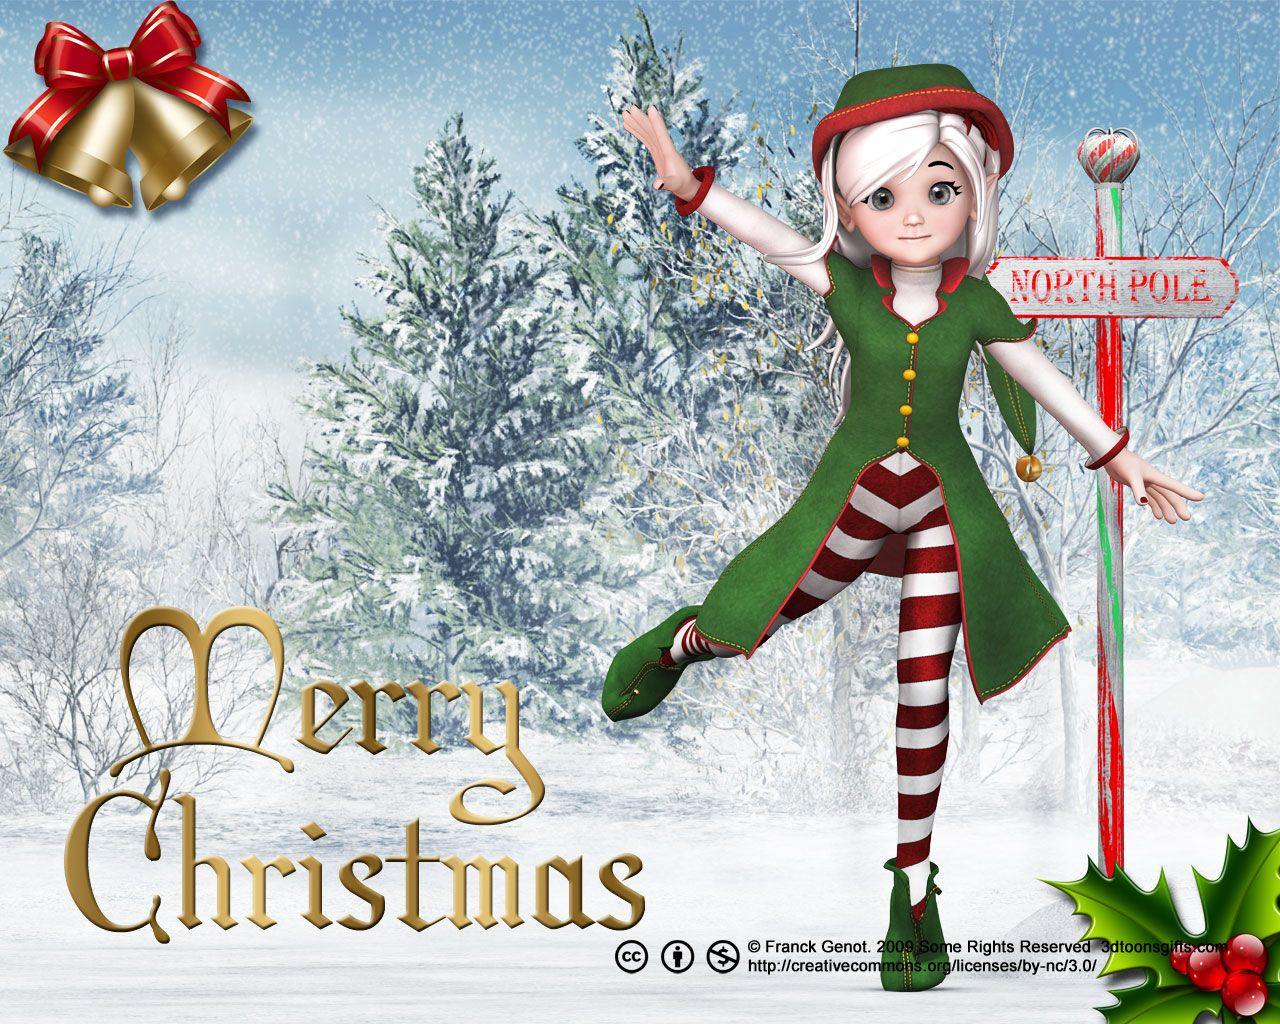 Christmas elf wallpaper ultimate free desktop wallpaper - Christmas elf on the shelf wallpaper ...